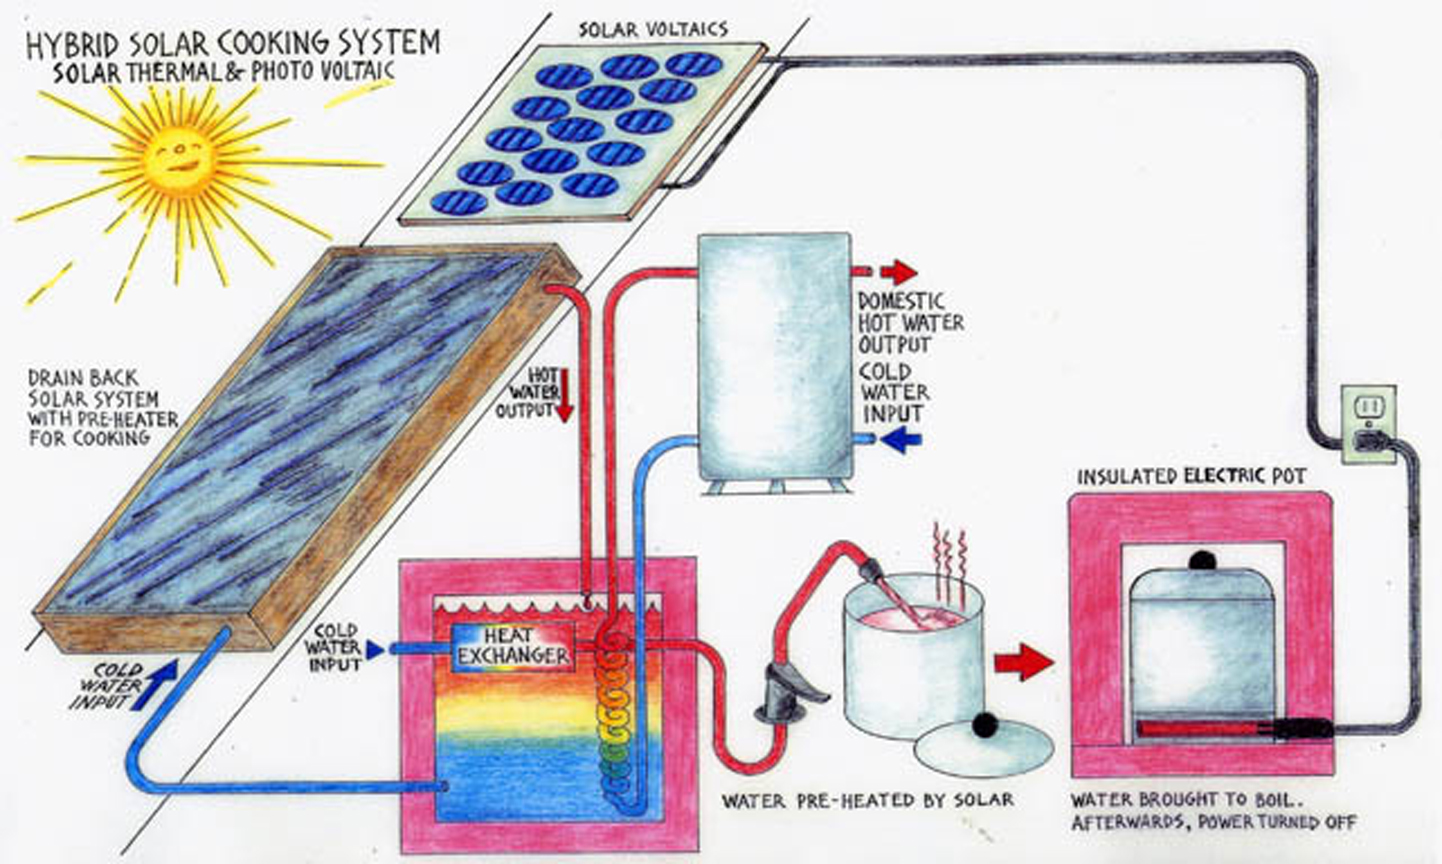 hybrid solar cooking system2 #215EAA